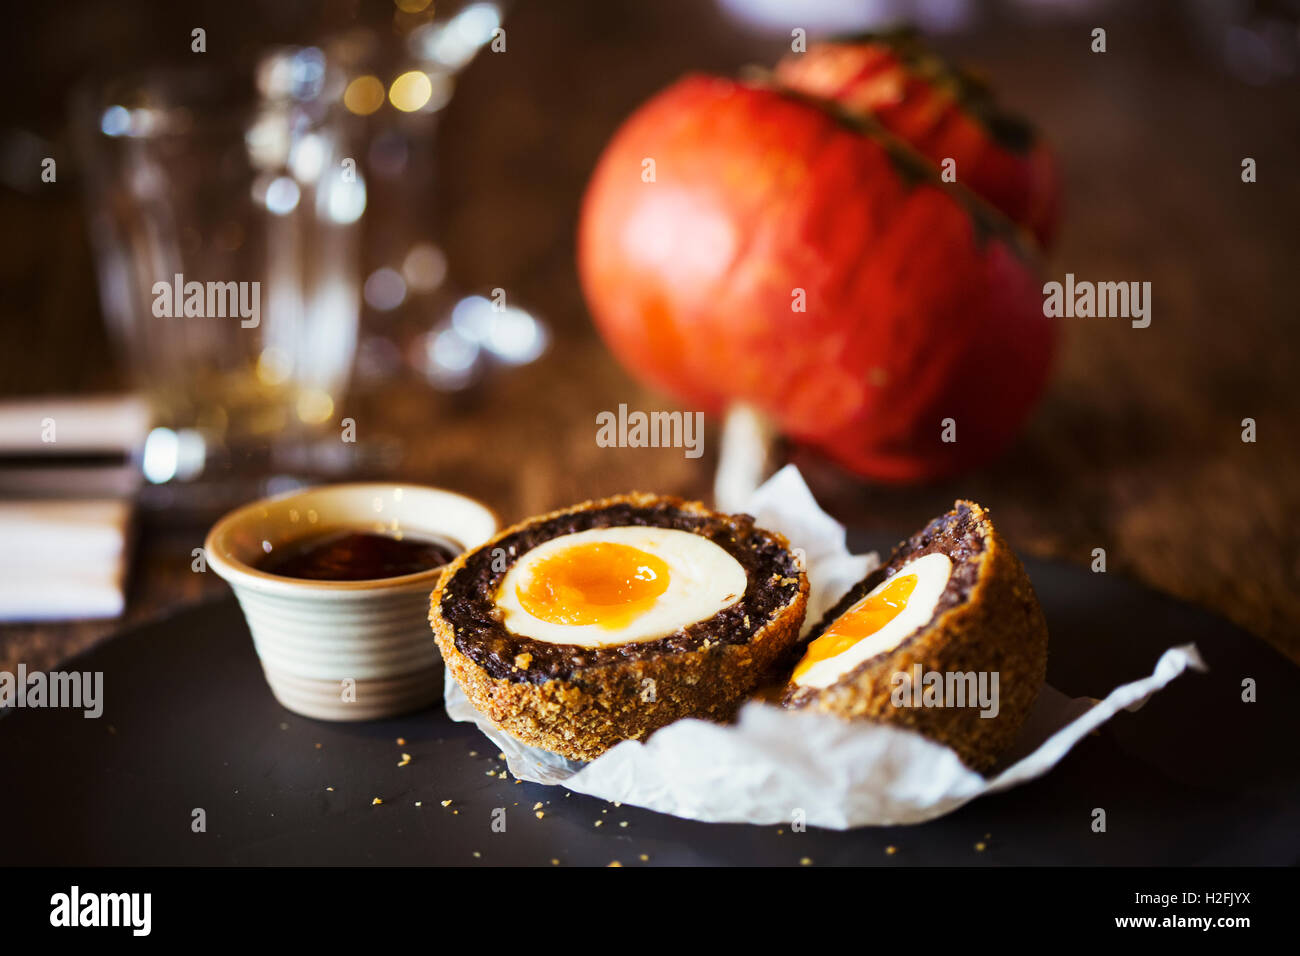 Village public house food. A dish with a fresh made scotch egg cut in to two and a pot of sauce. - Stock Image